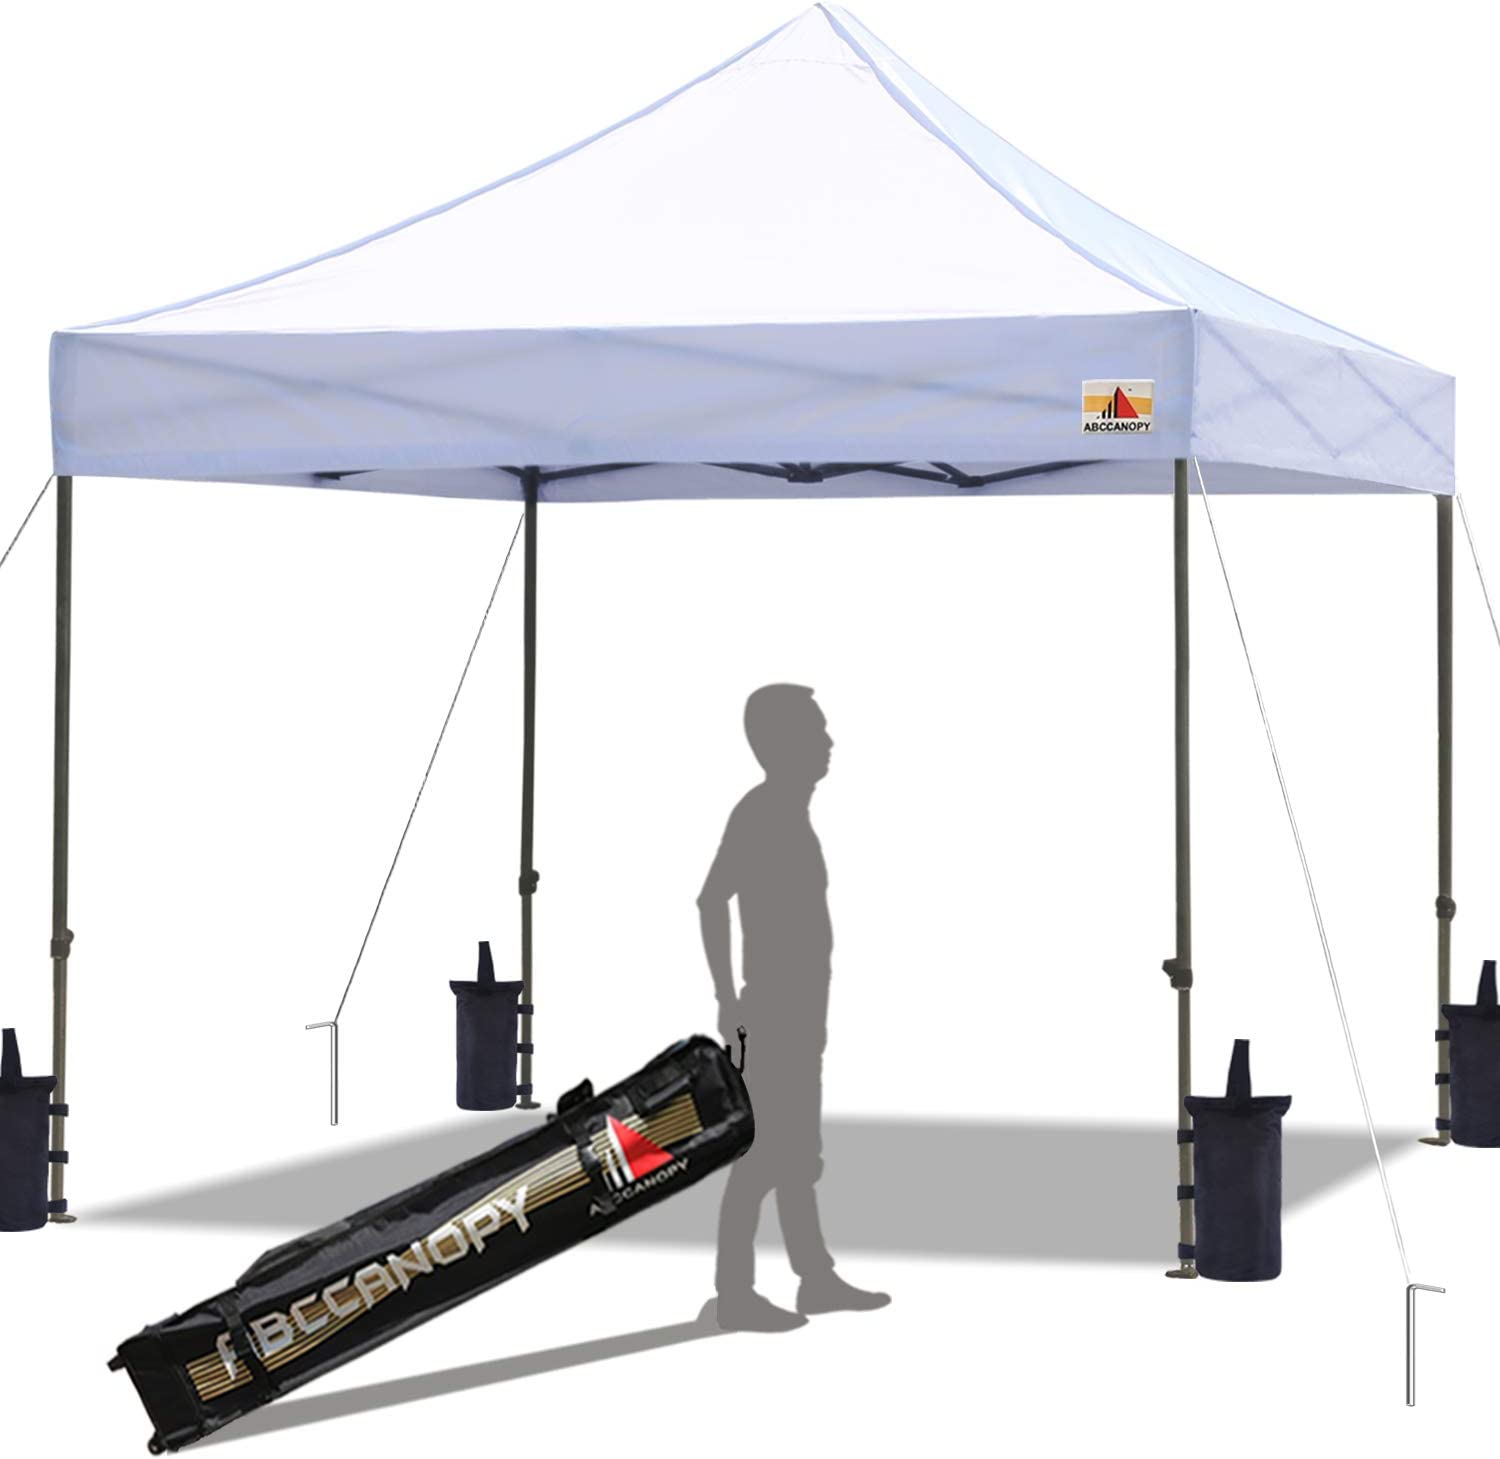 ABCCANOPY Pop up Canopy Tent Commercial Instant Shelter with Wheeled Carry Bag, Bonus 4 Canopy Sand Bags, 10x10 FT White